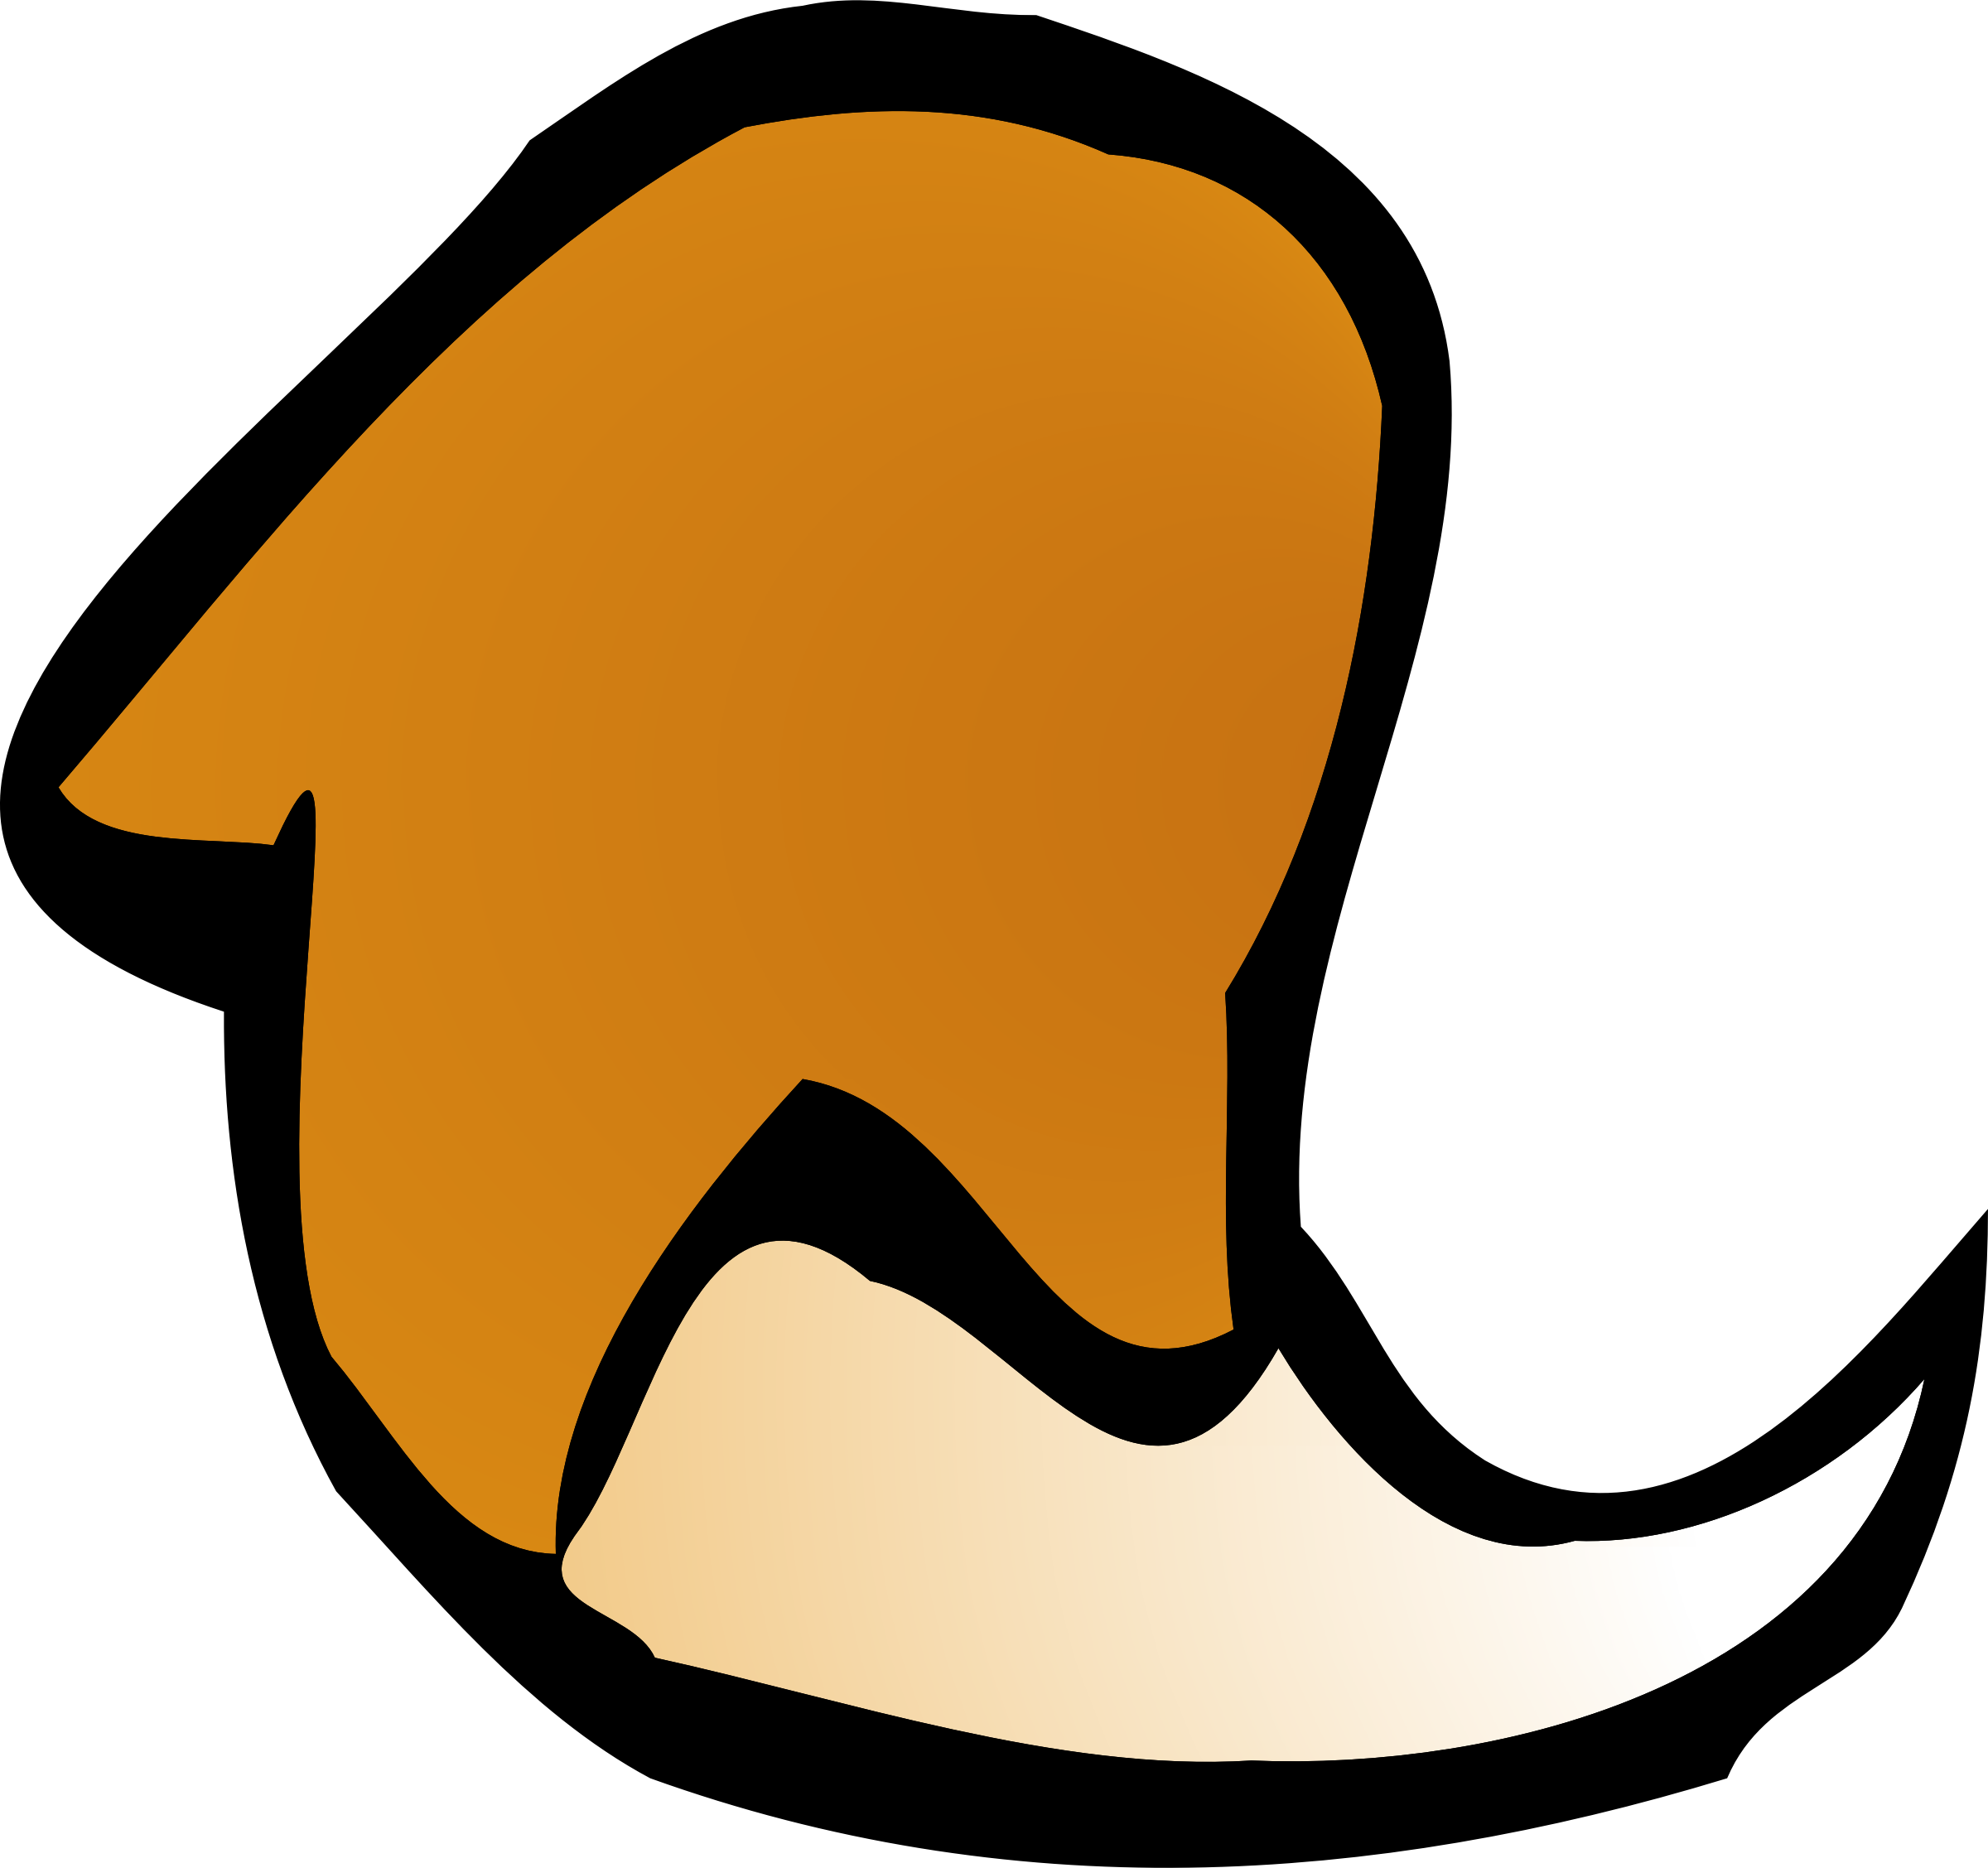 fox tail icon by Klàro